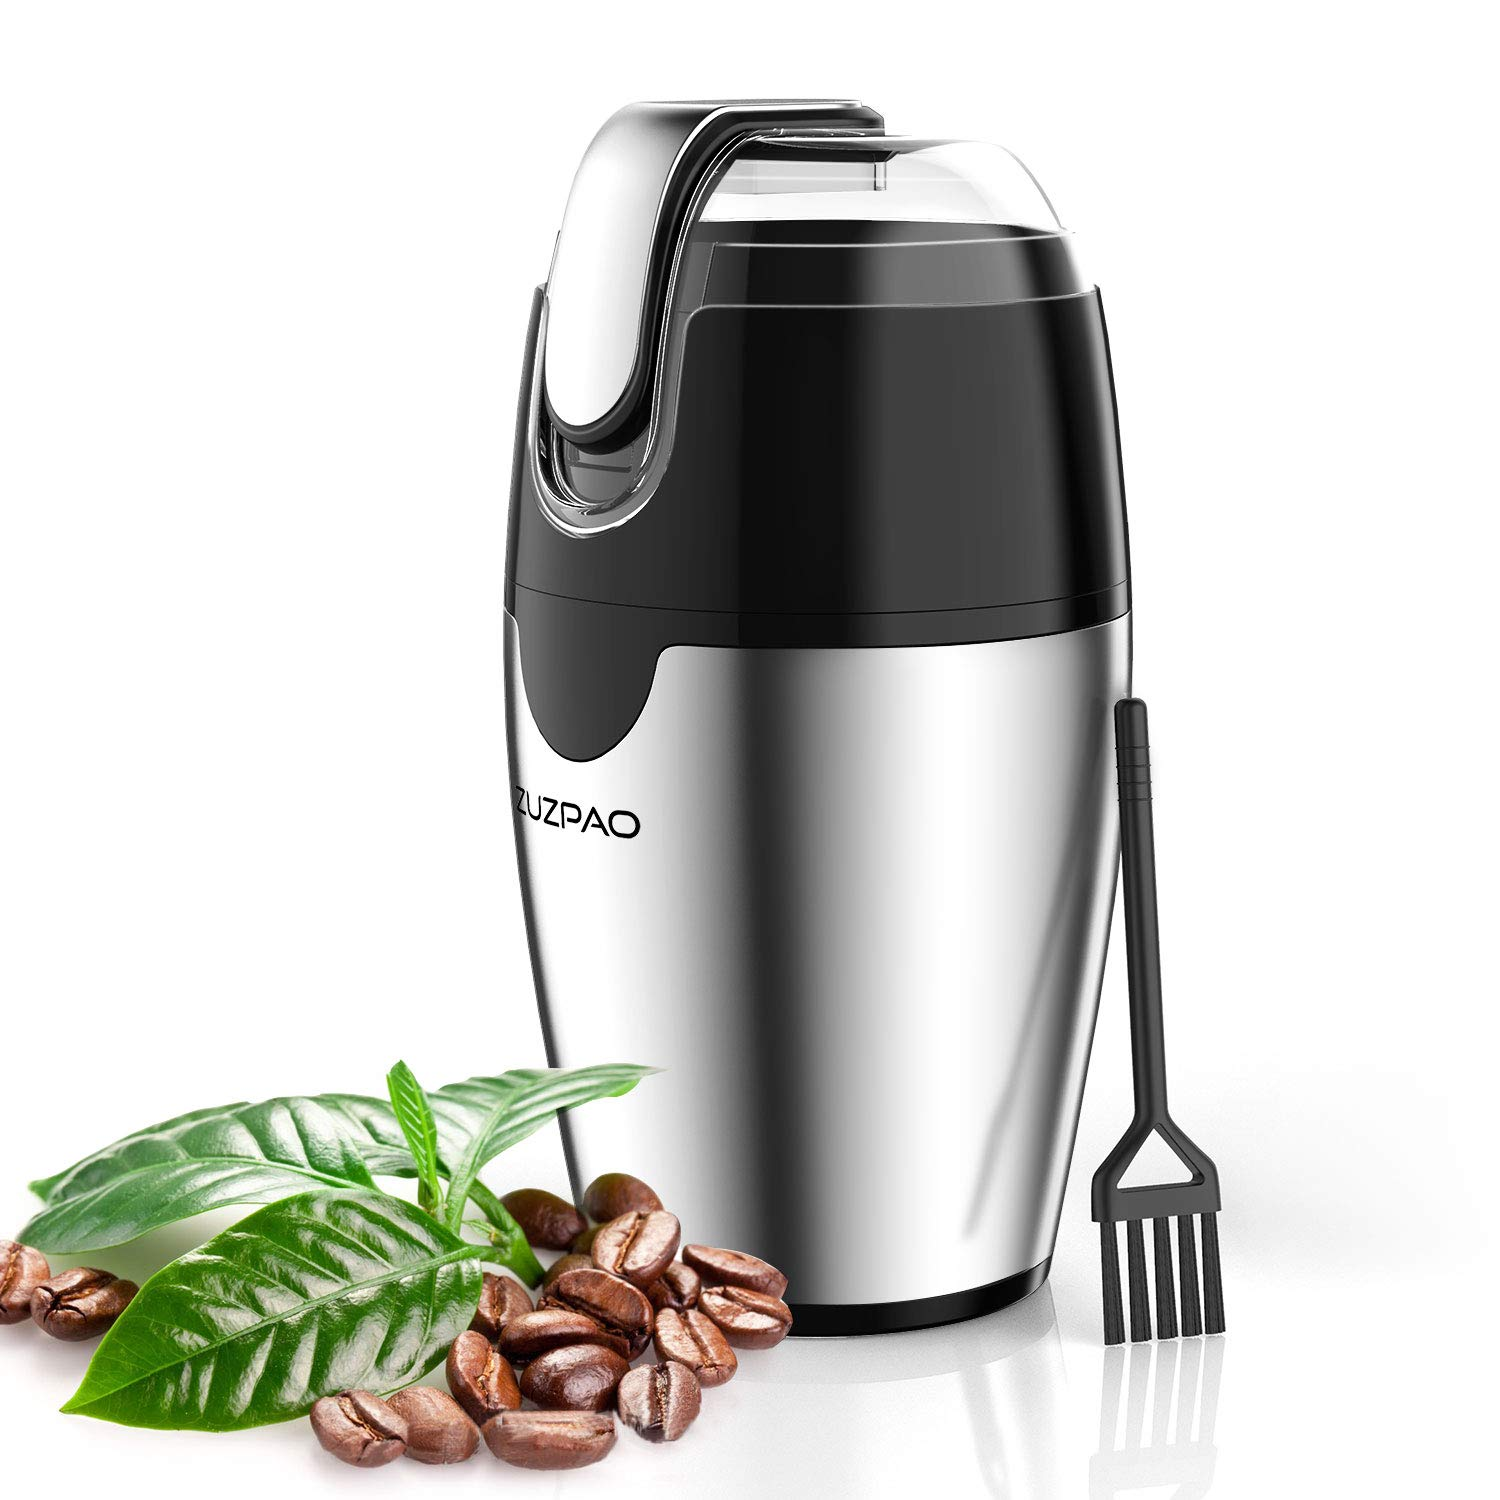 Coffee Grinder Electric, ZUZPAO Spice Stainless Steel Blade Grinder Mills 200W, 2.5 Ounce Capacity Fast Grinding for Coffee Beans, Seeds, Herbs, Pepper, Grains, and Nut by ZUZPAO